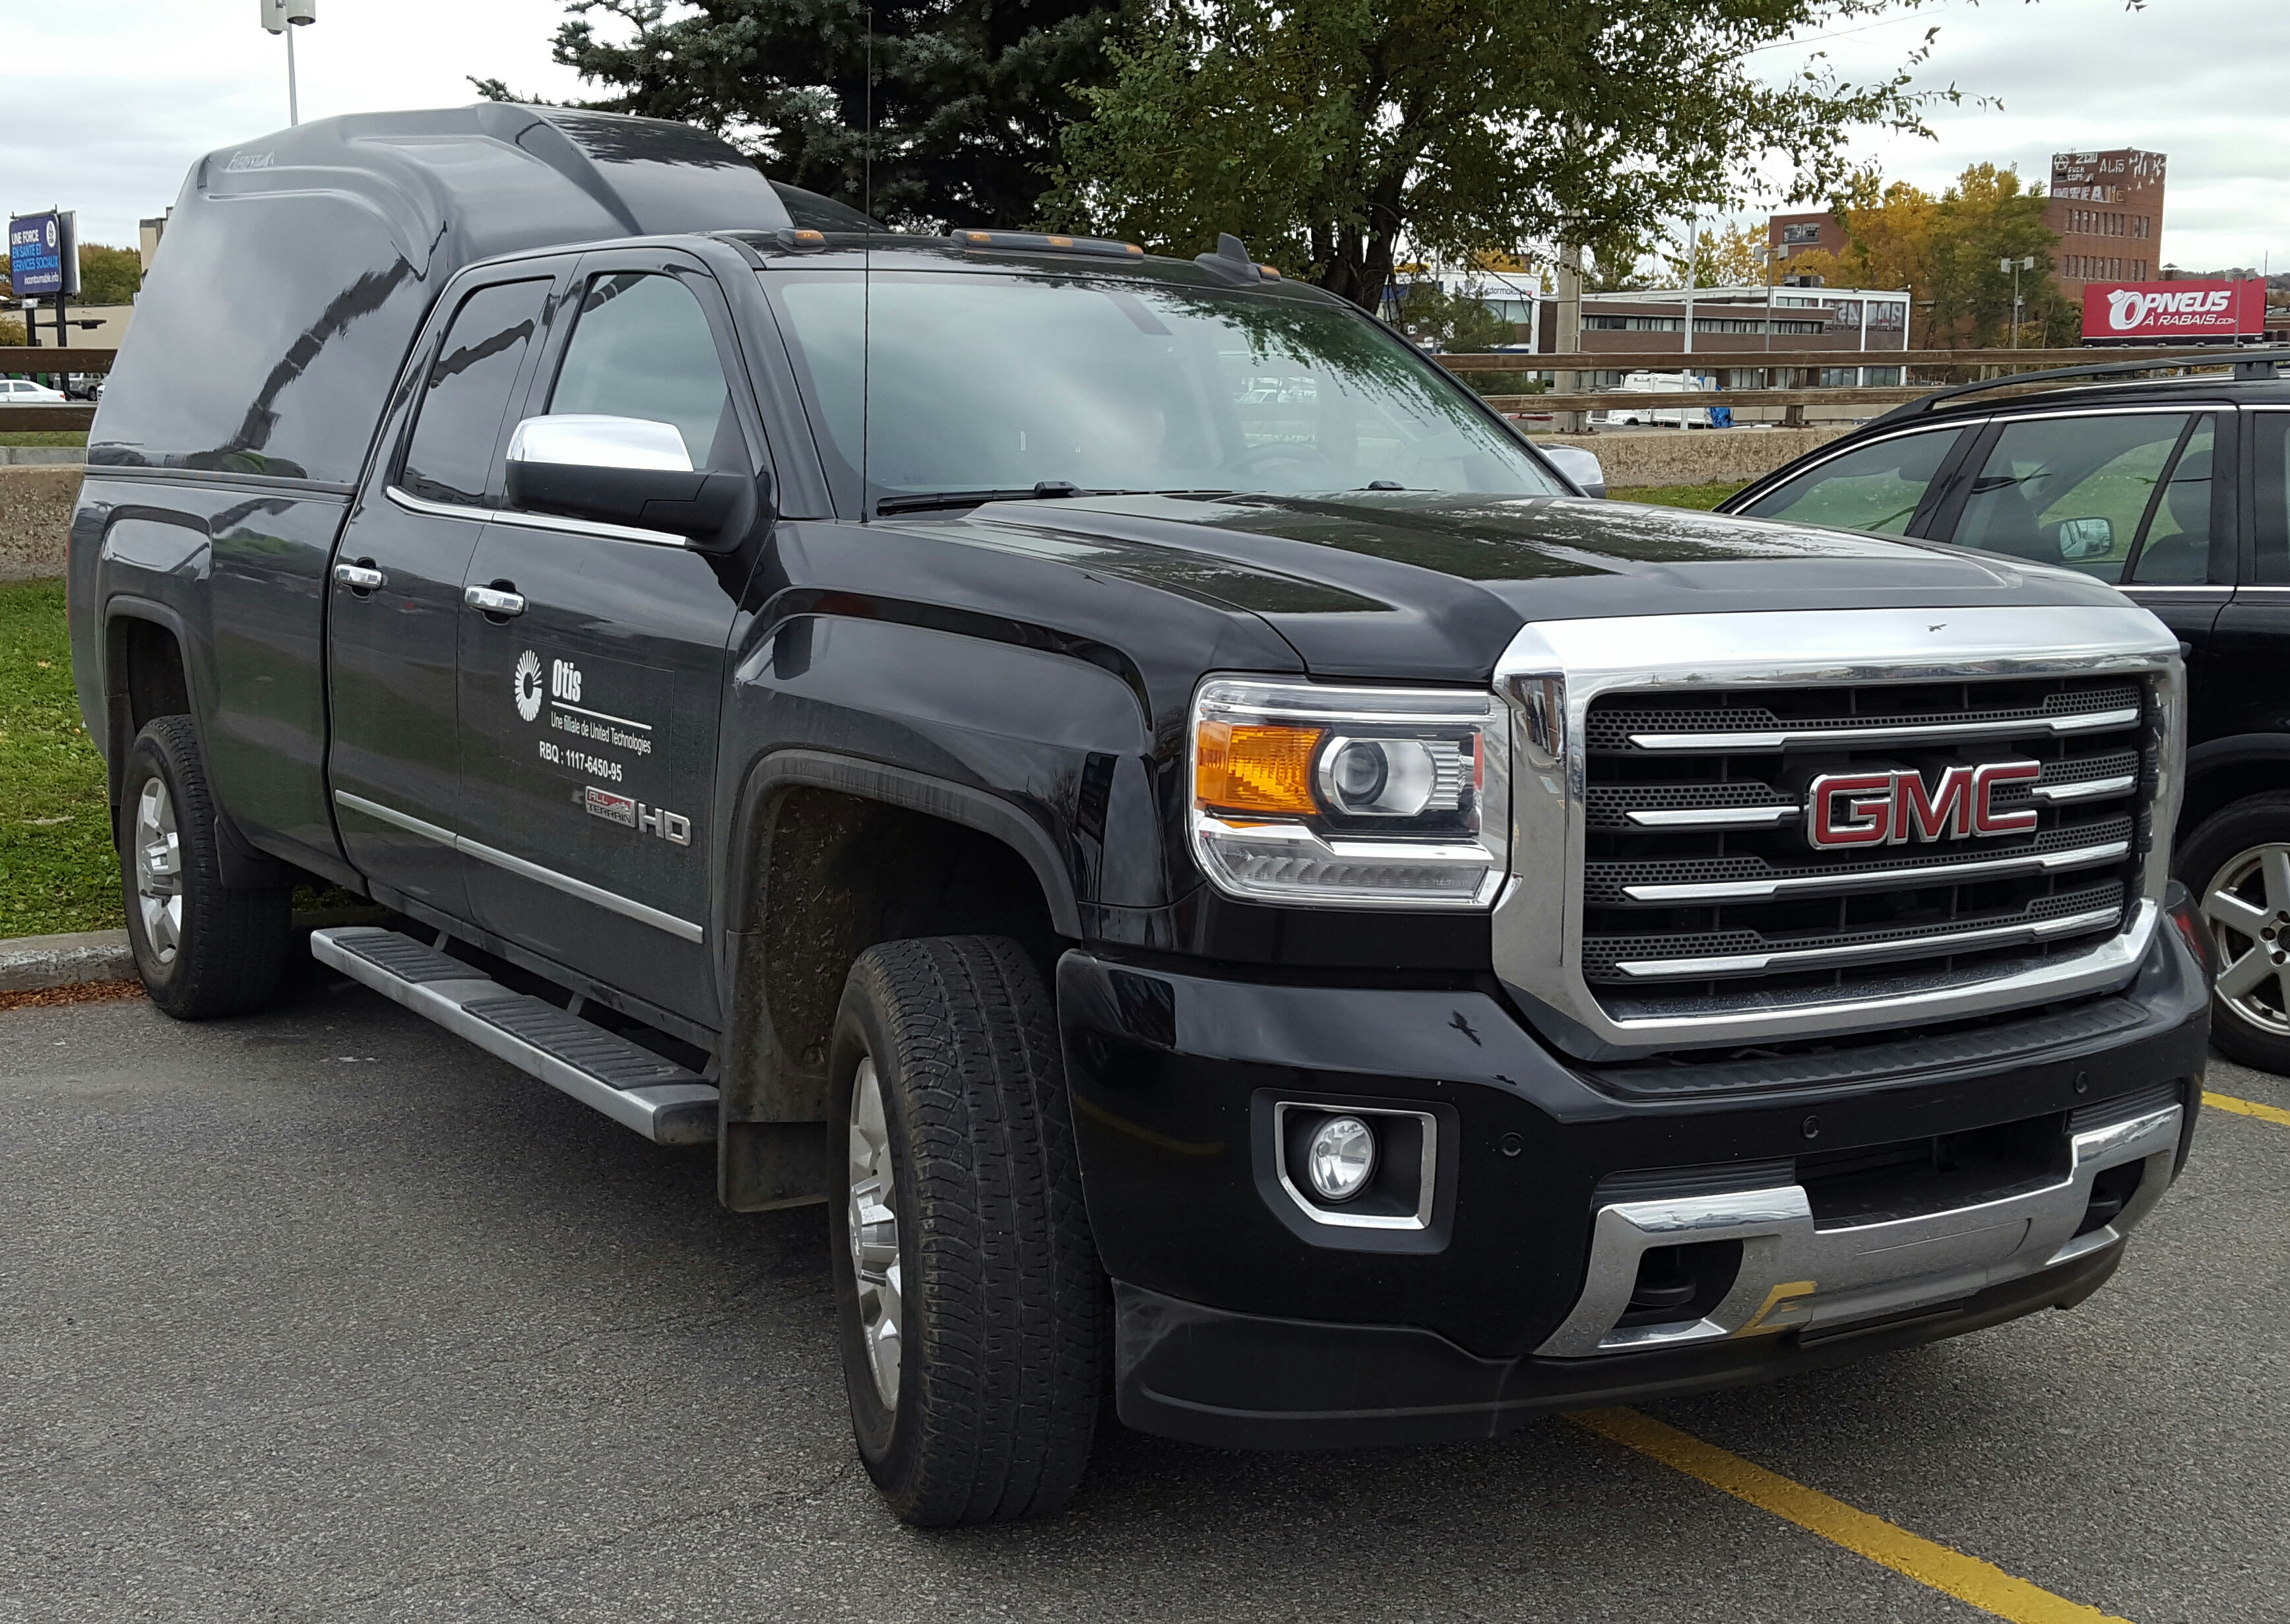 new vehicle news gmc reveals terrain limited sierra the all x auto edition hd of